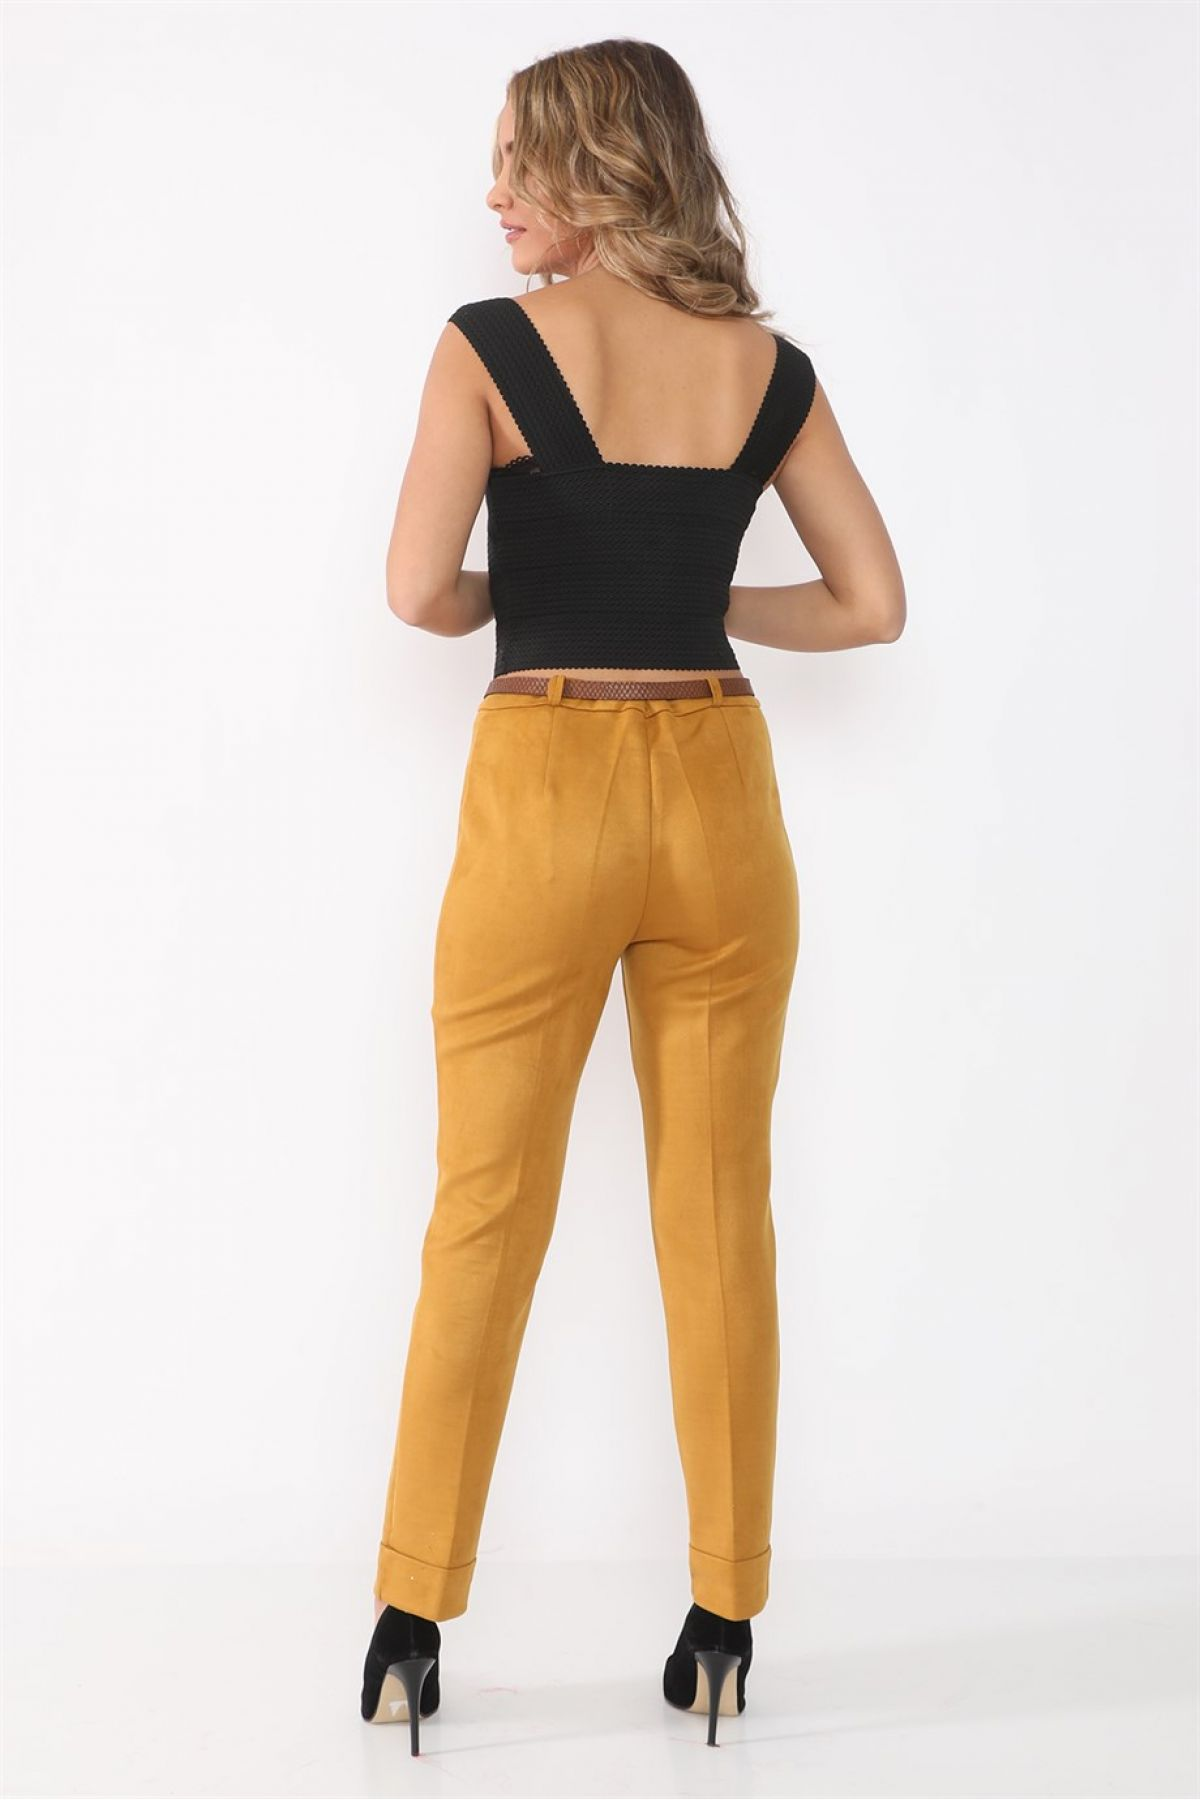 women pants-Neon Yellow